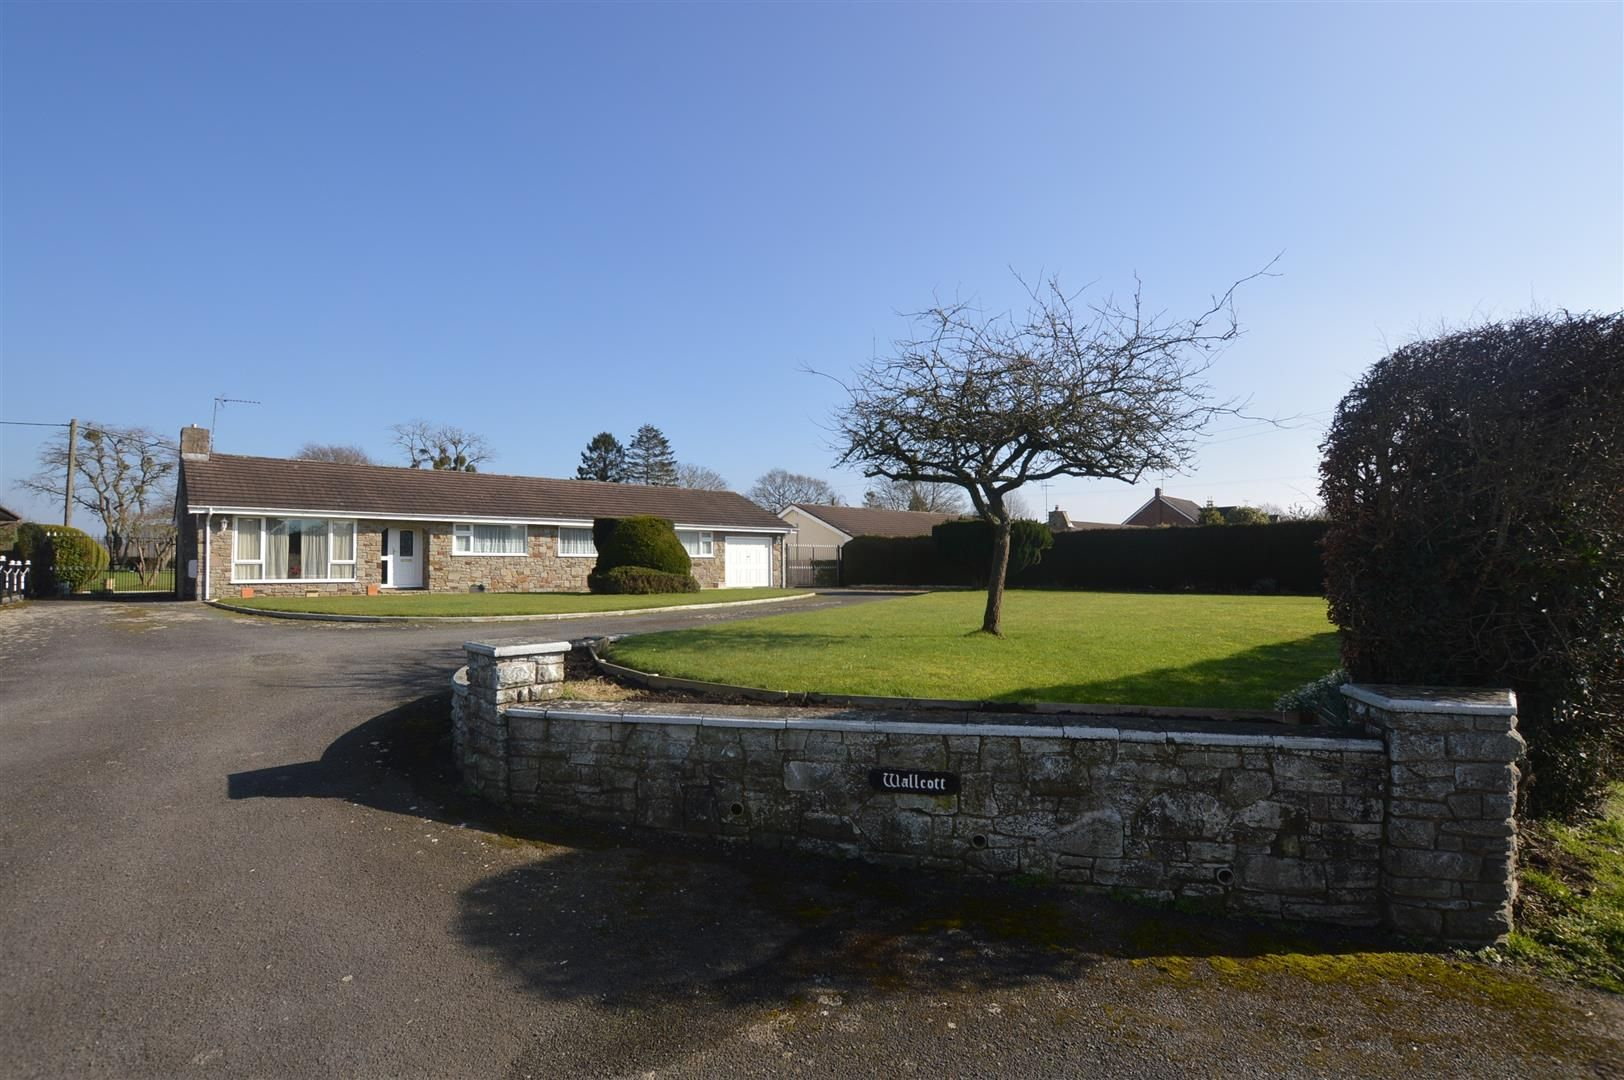 4 bed detached bungalow for sale in Kingsland, HR6